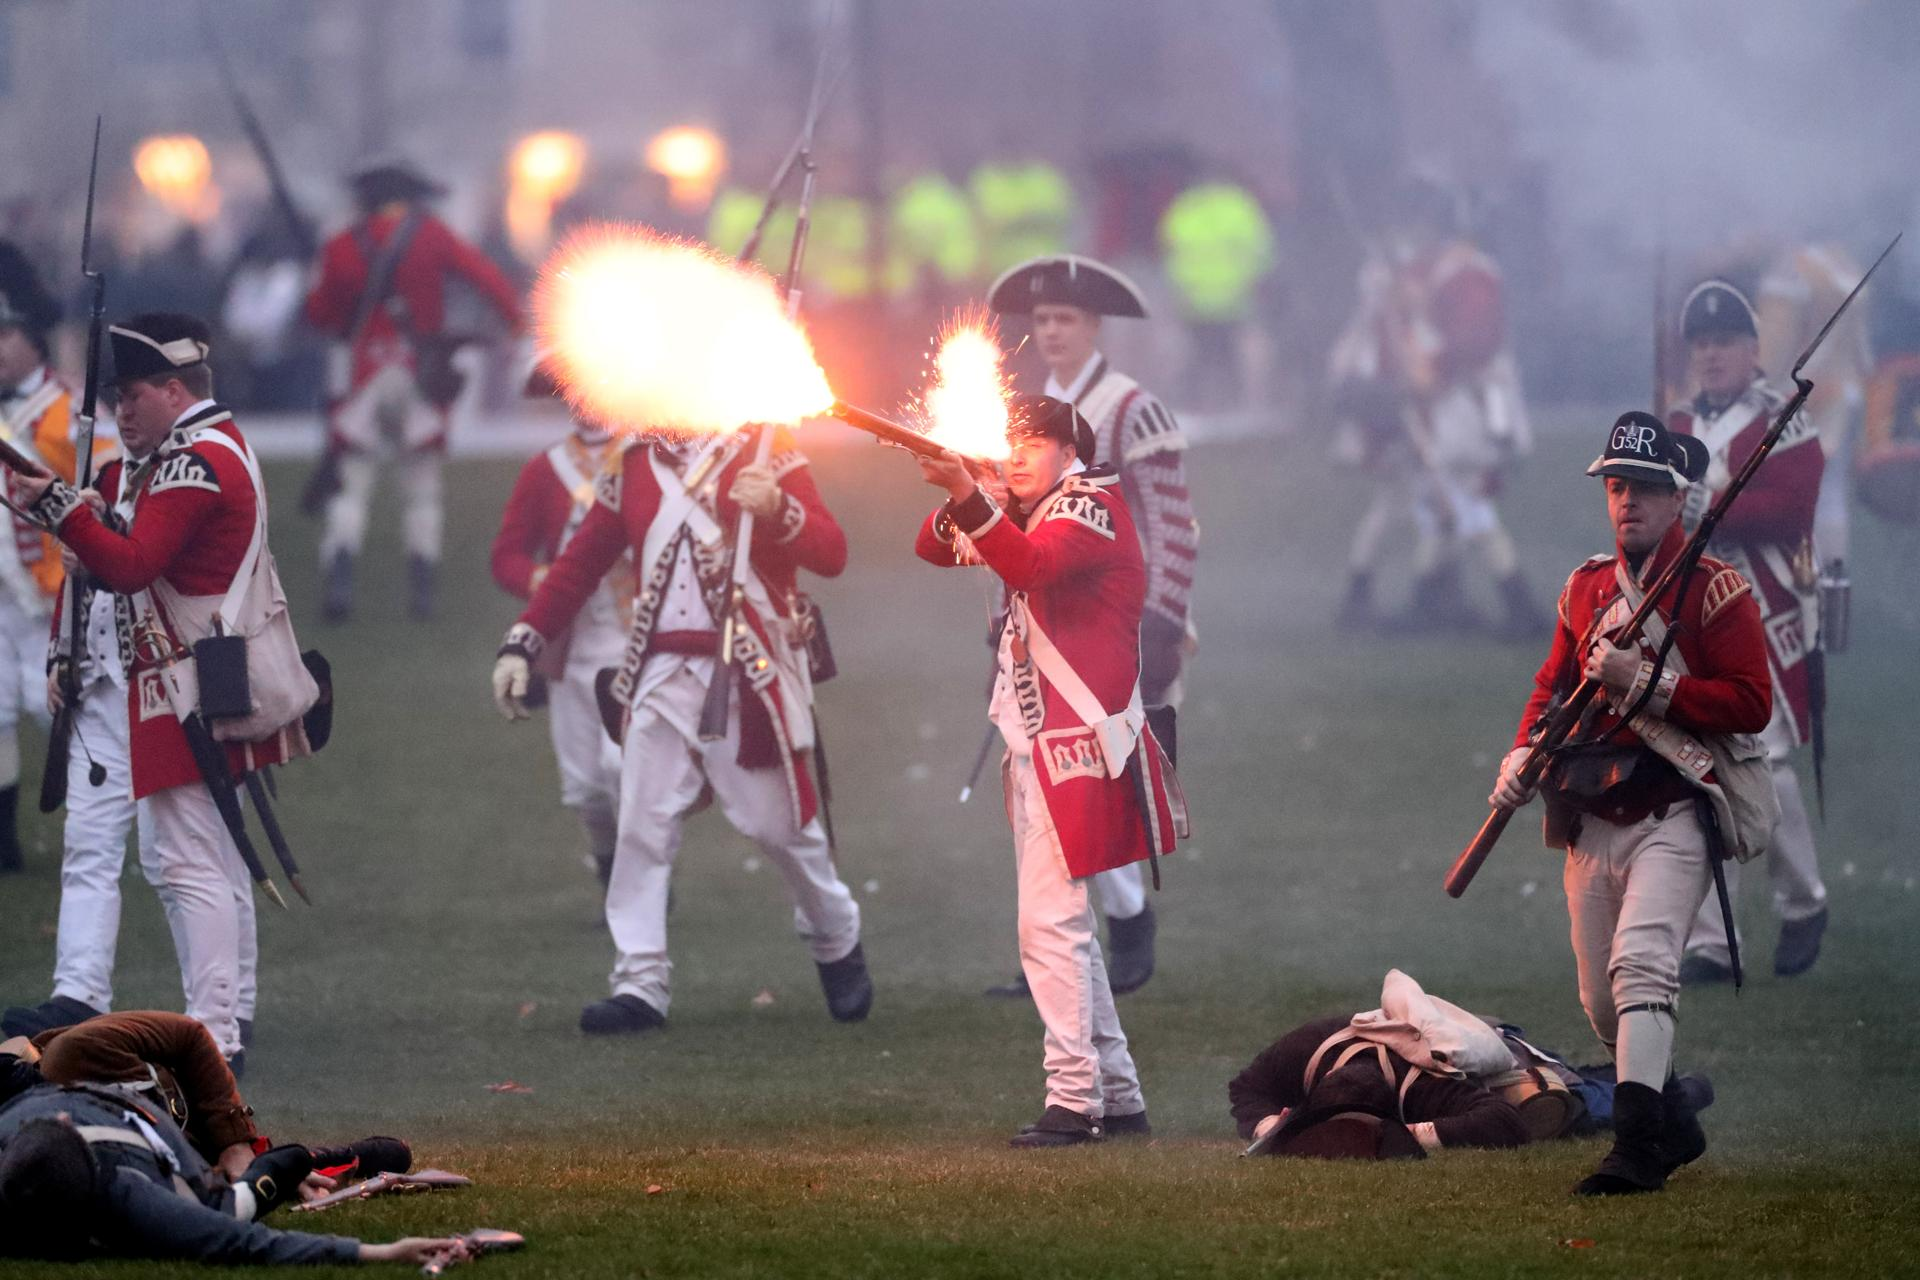 APRIL 15, 2019 --LEXINGTON, MA - Lexington Minute Men lie dead and wounded on ground as Her Majesty's Army fires their mustkets as re-enactors depict the skirmish that took place on Lexington common early on the morning of April 19, 1775. (Joanne Rathe/ Globe Staff)